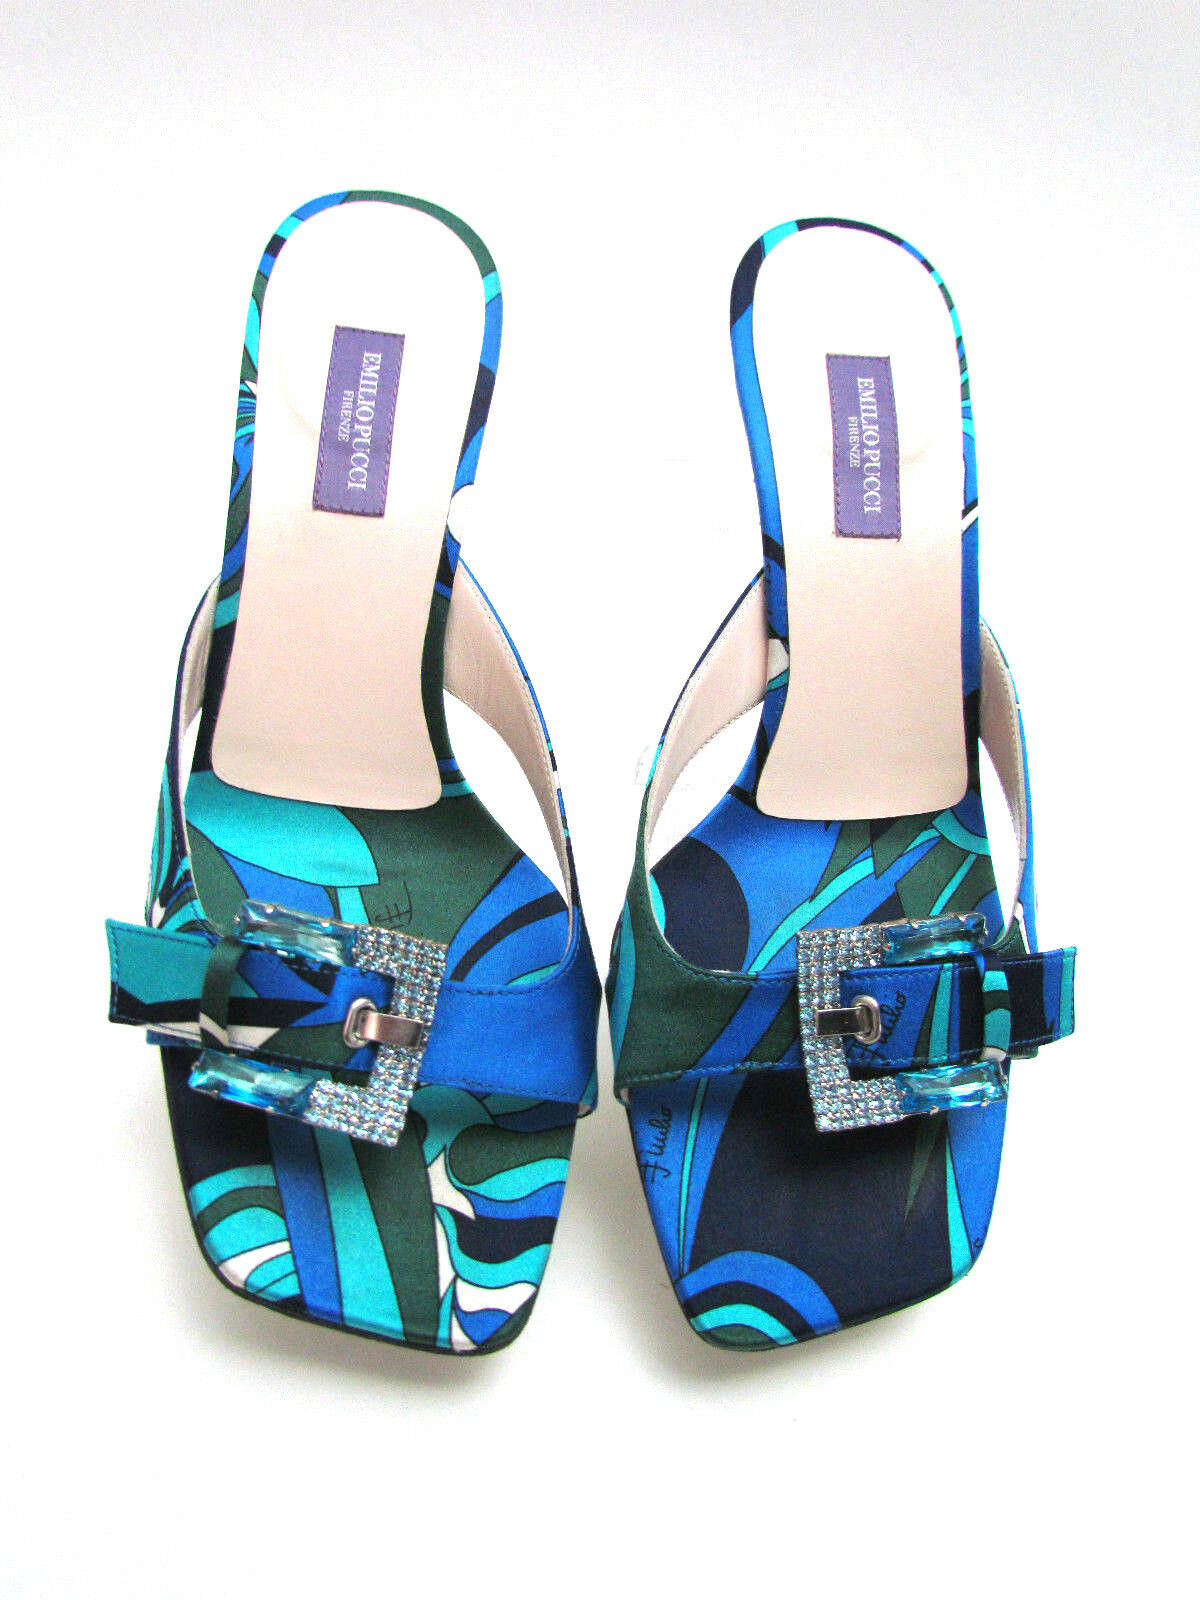 EMILIO PUCCI  MULTI Couleur  SATIN  & CRYSTAL BUCKLE MED HEEL SANDALS Taille 8 -38 M